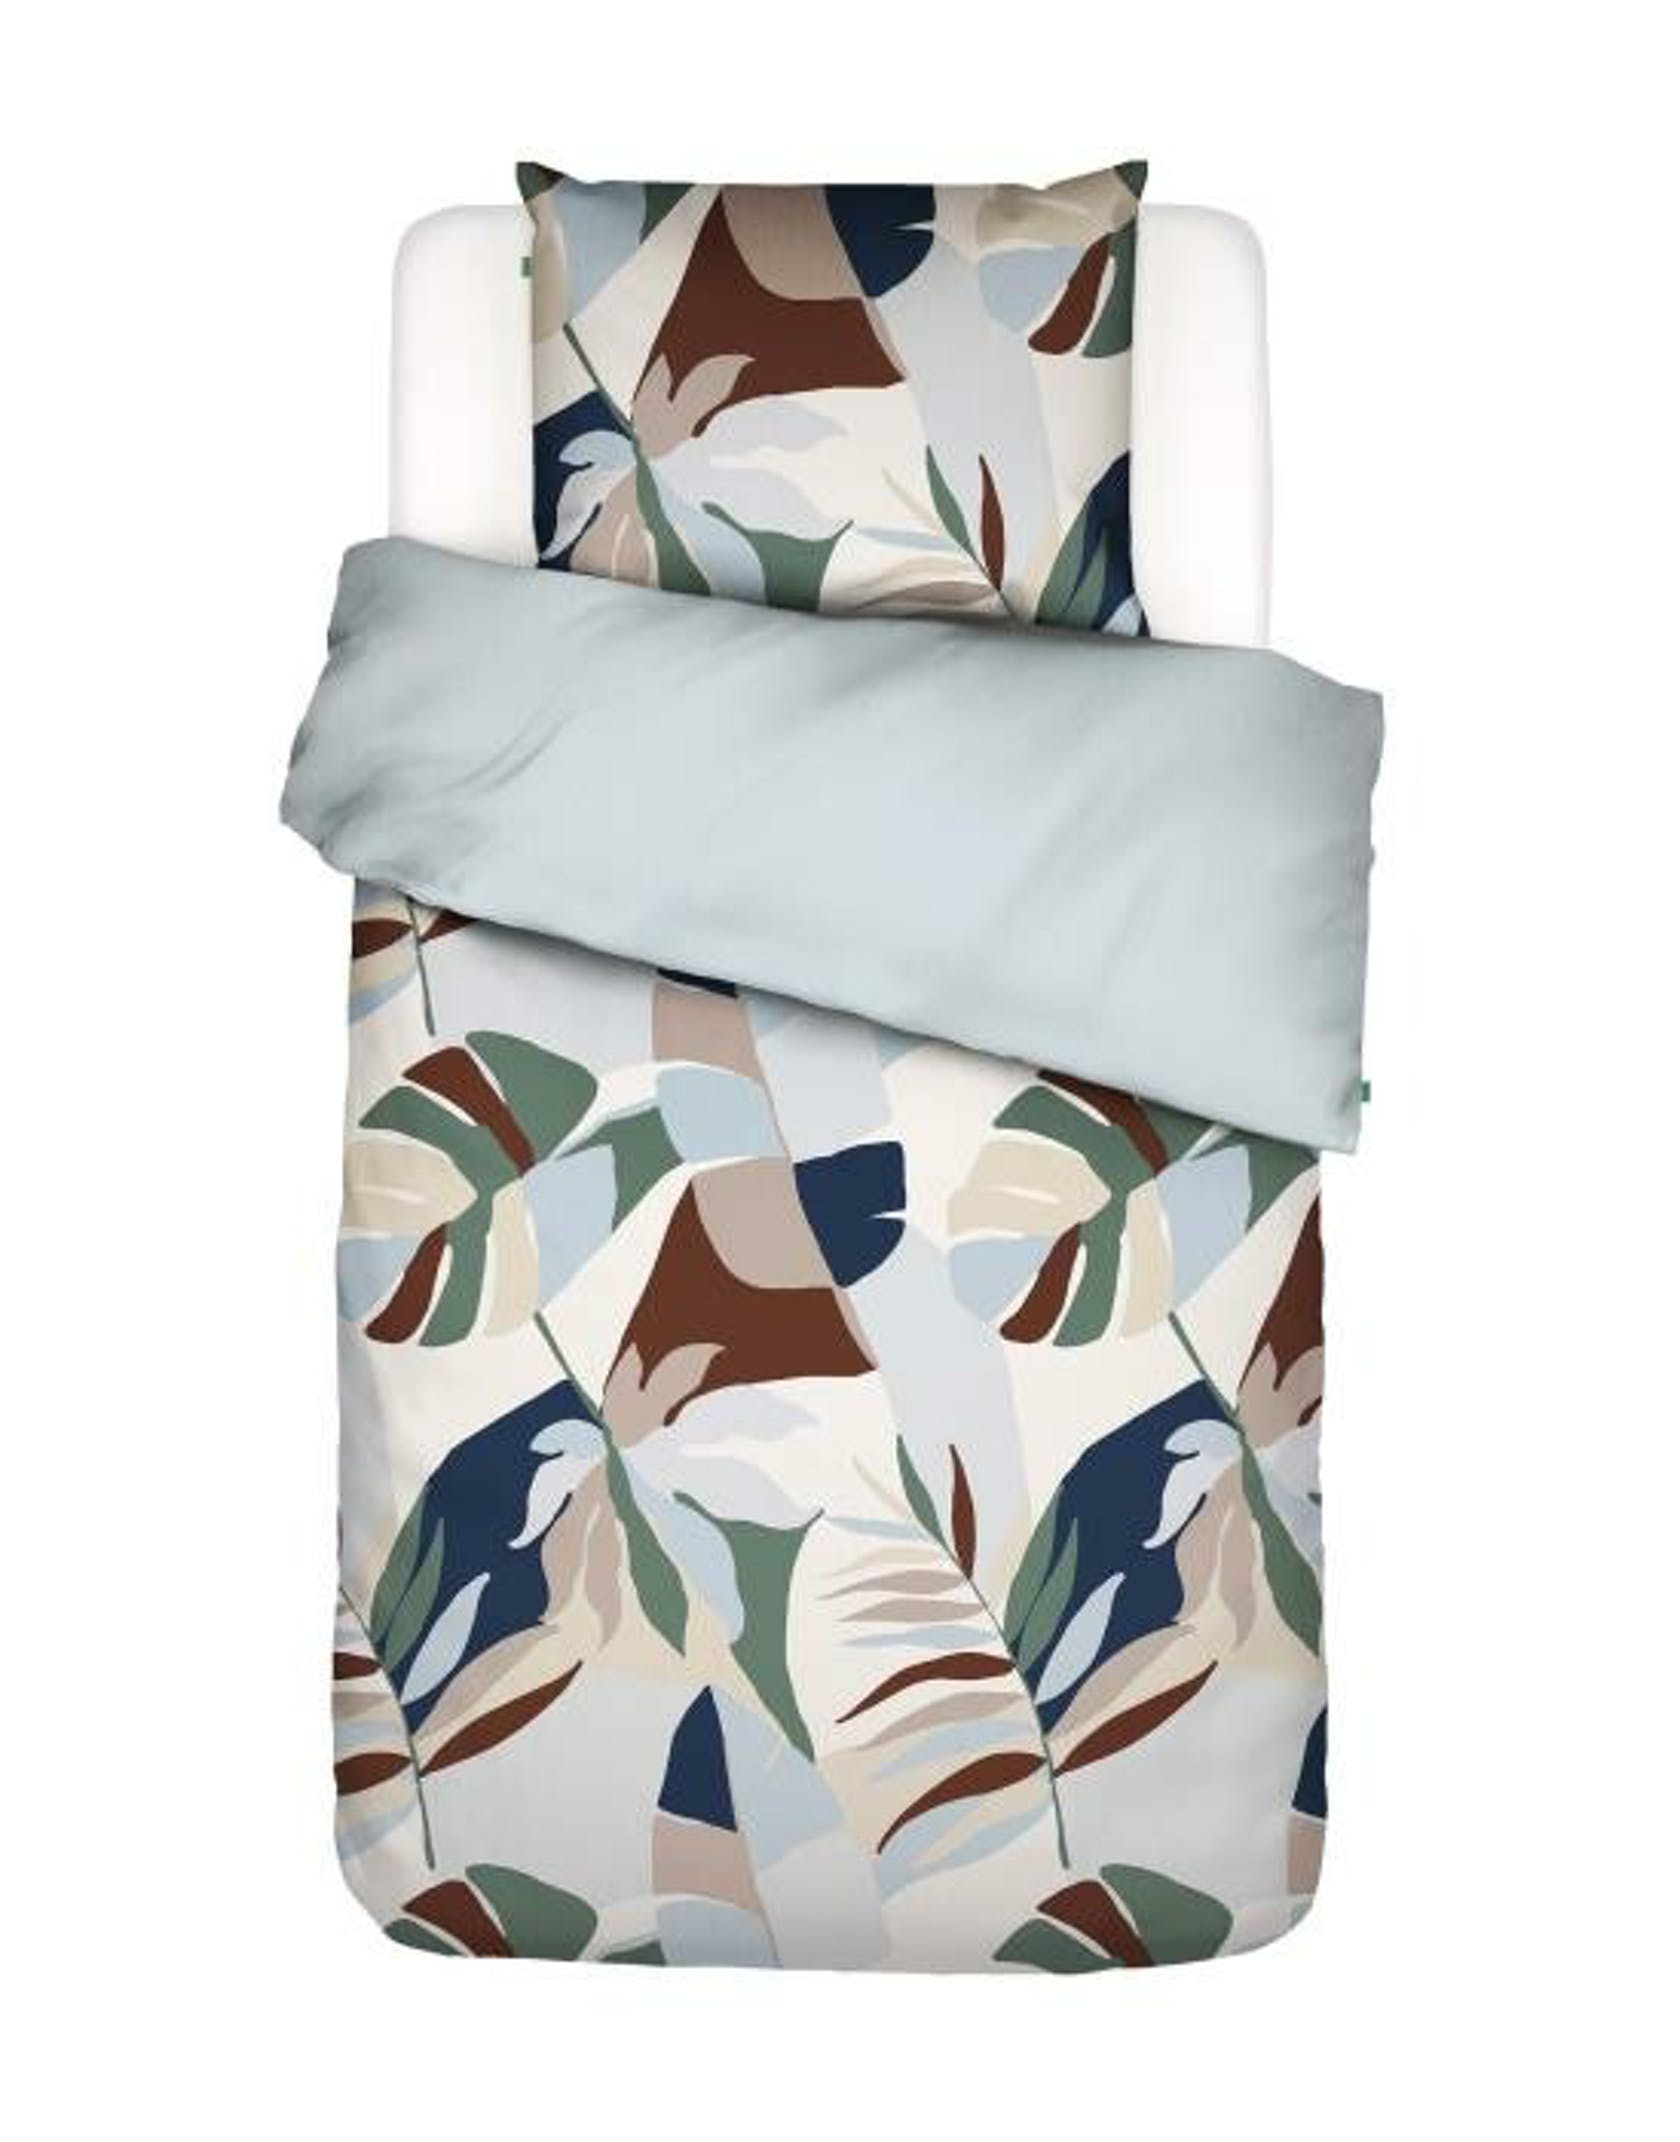 Covers & Co Leaf me alone Multi Duvet cover 135 x 200